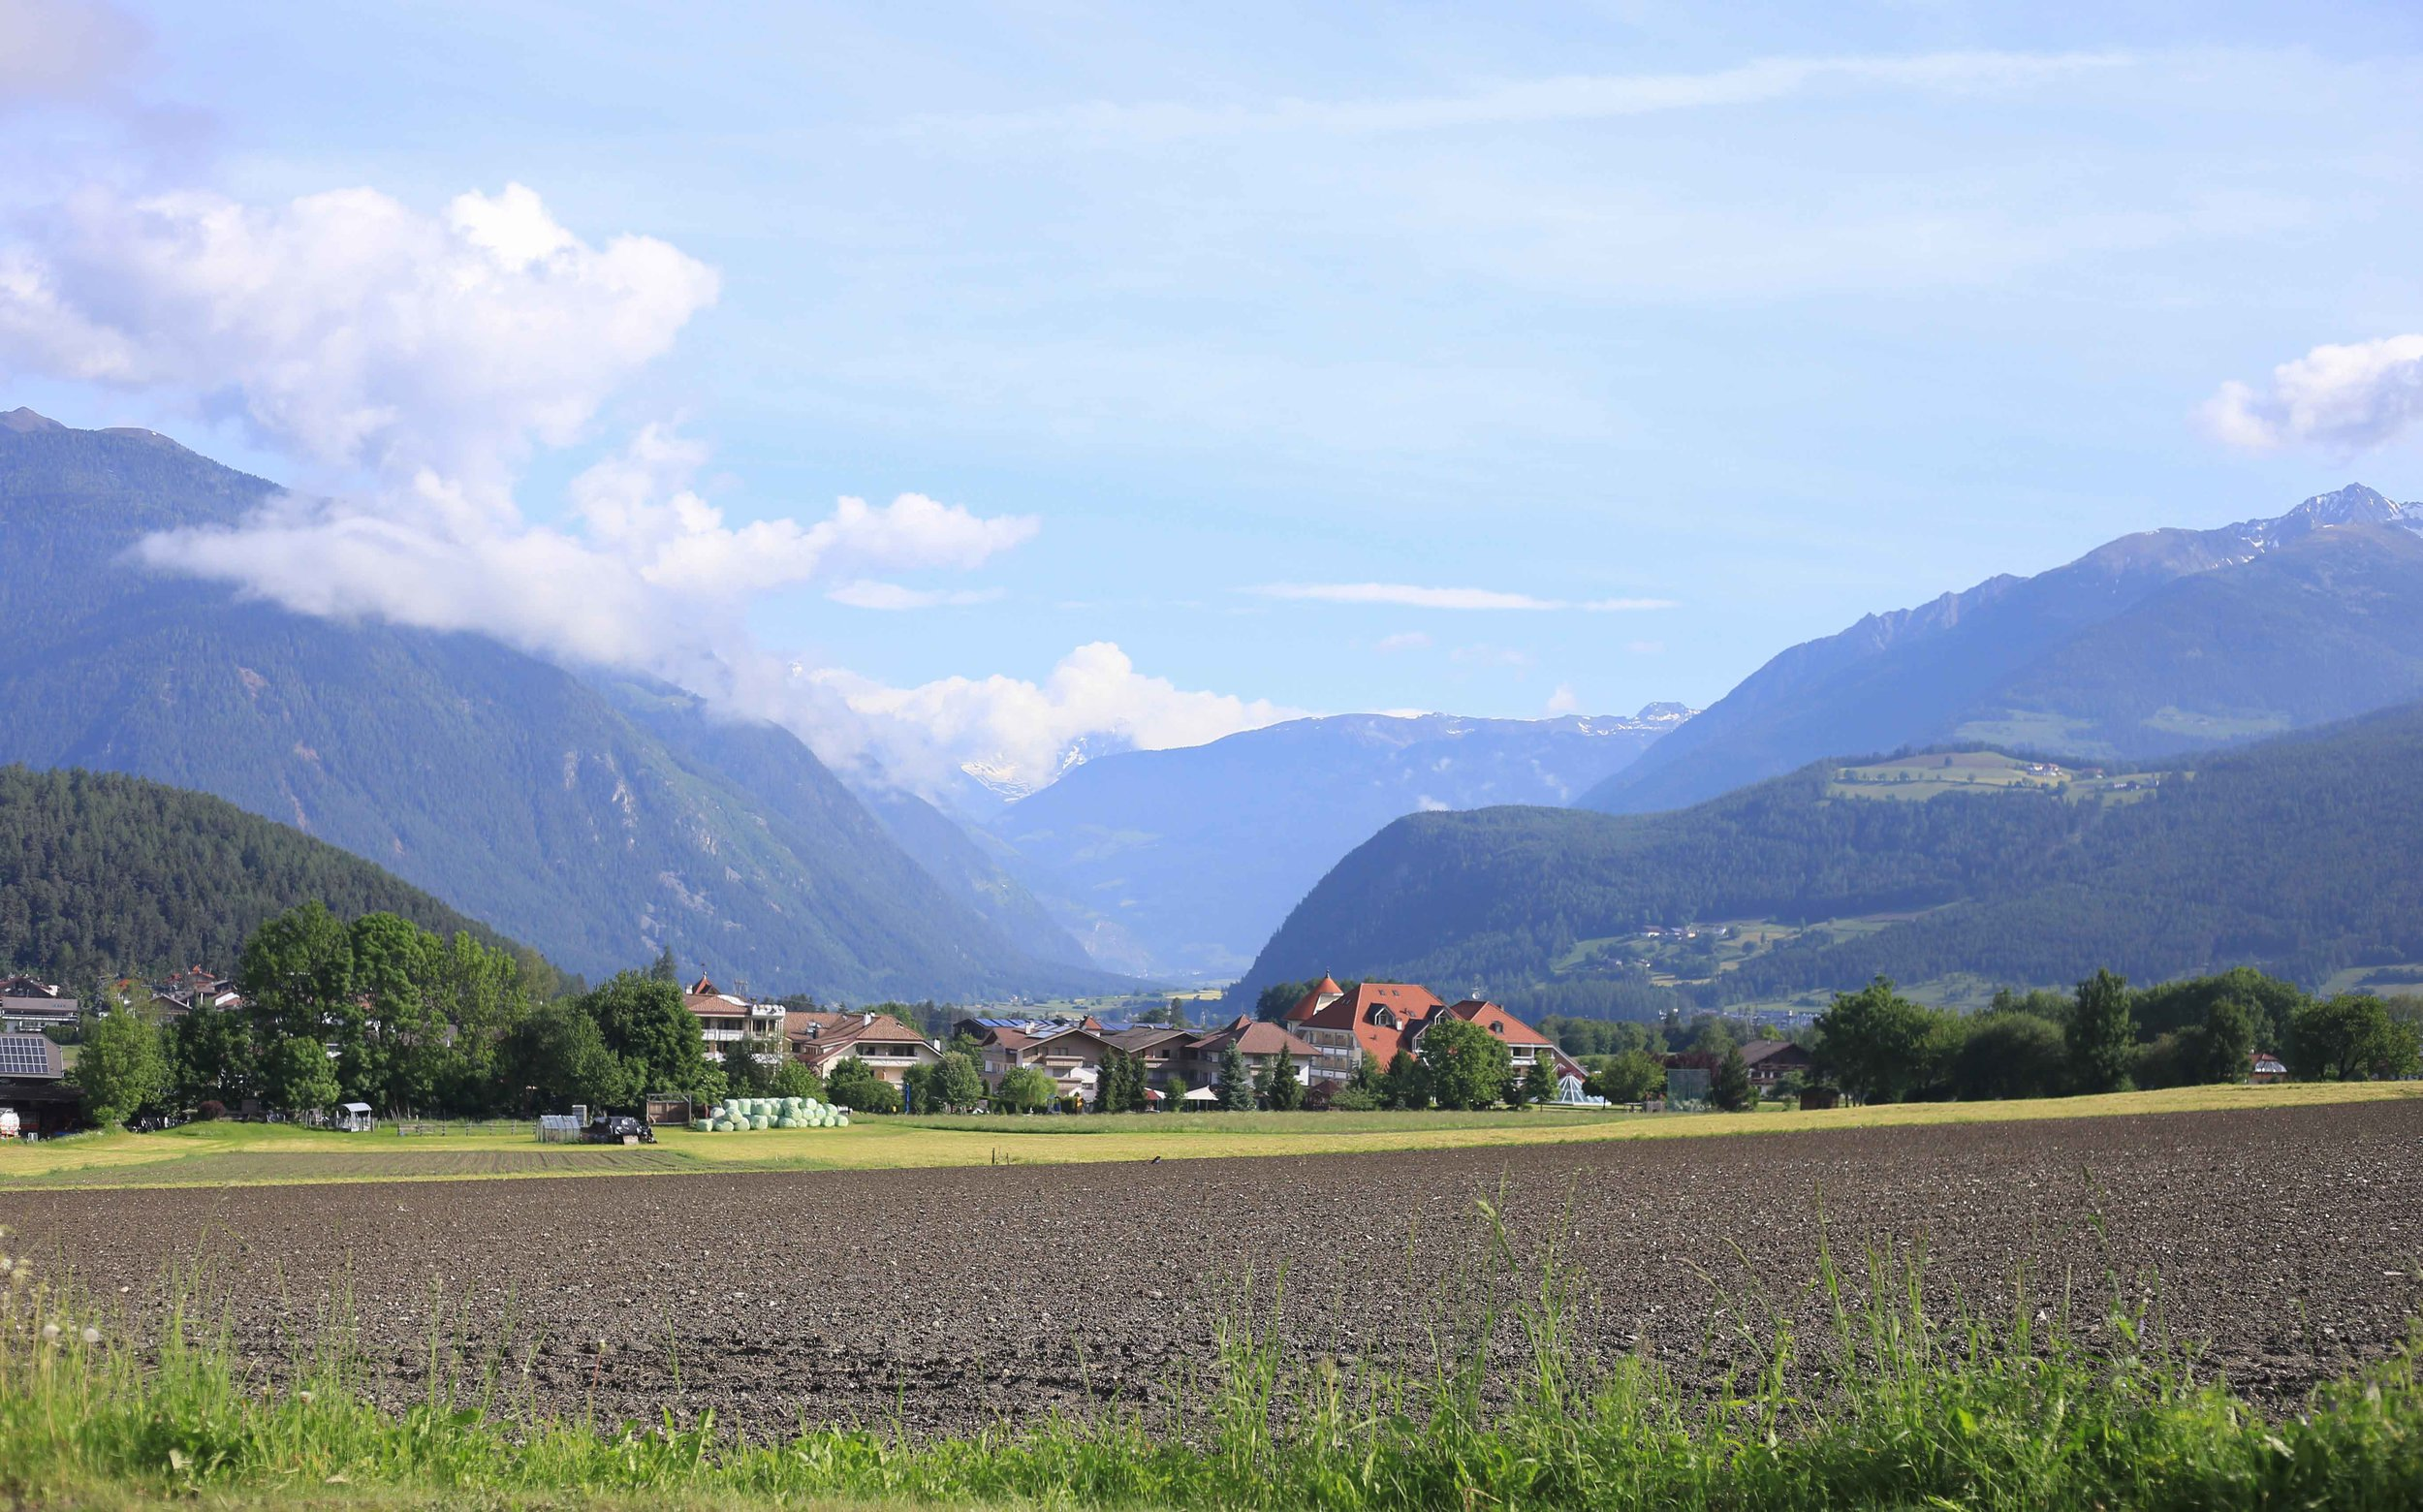 Italian Alps as seen from the charming town of Bruneck (Brunico)